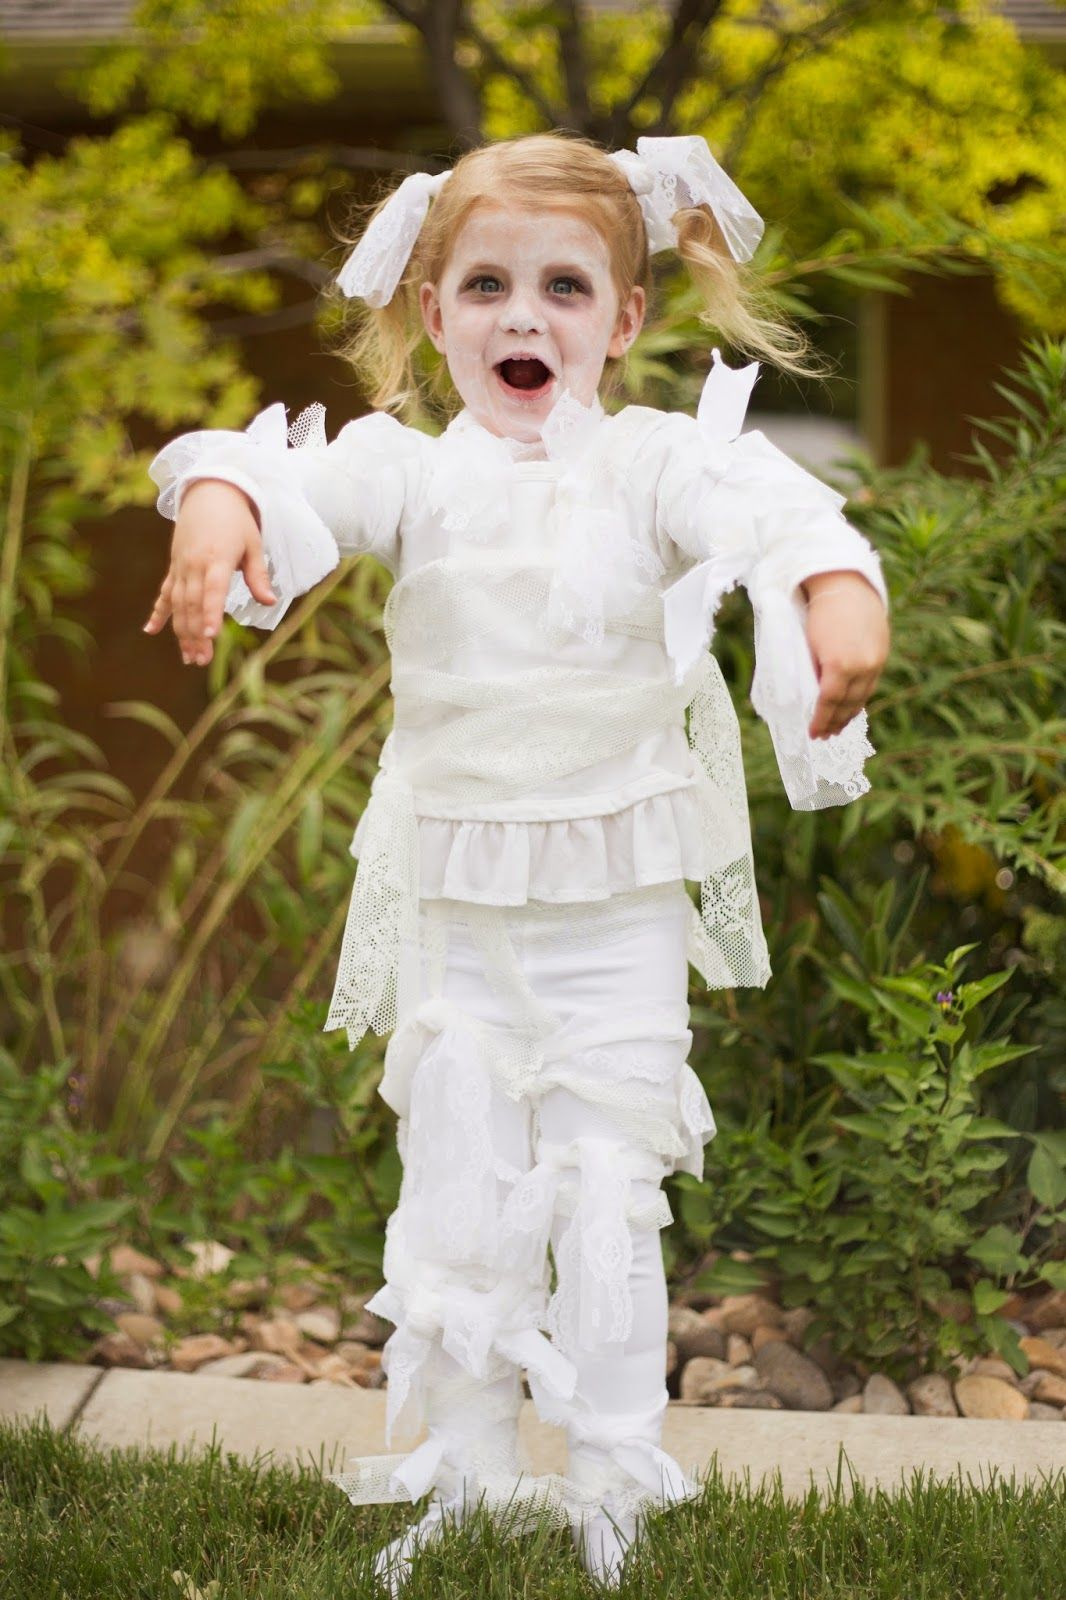 Boo! This cute little mummy is after you! This simple and